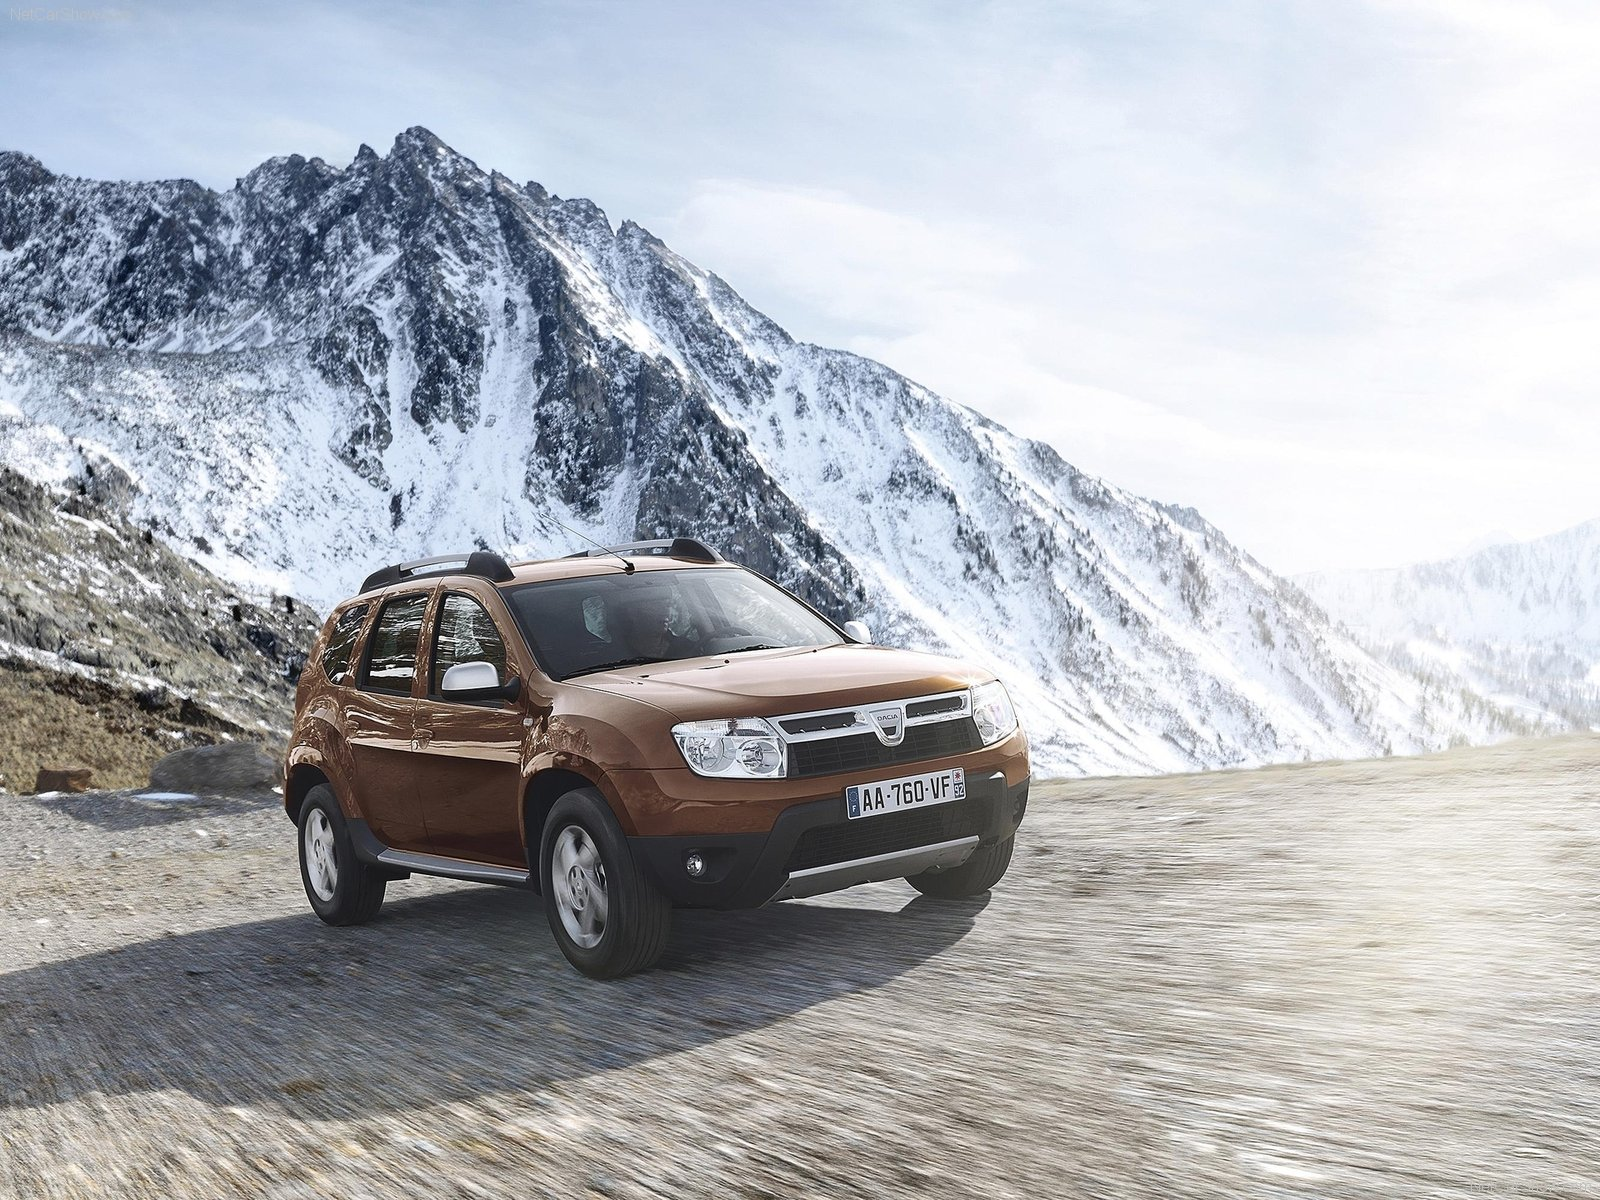 dacia duster photos photogallery with 130 pics. Black Bedroom Furniture Sets. Home Design Ideas